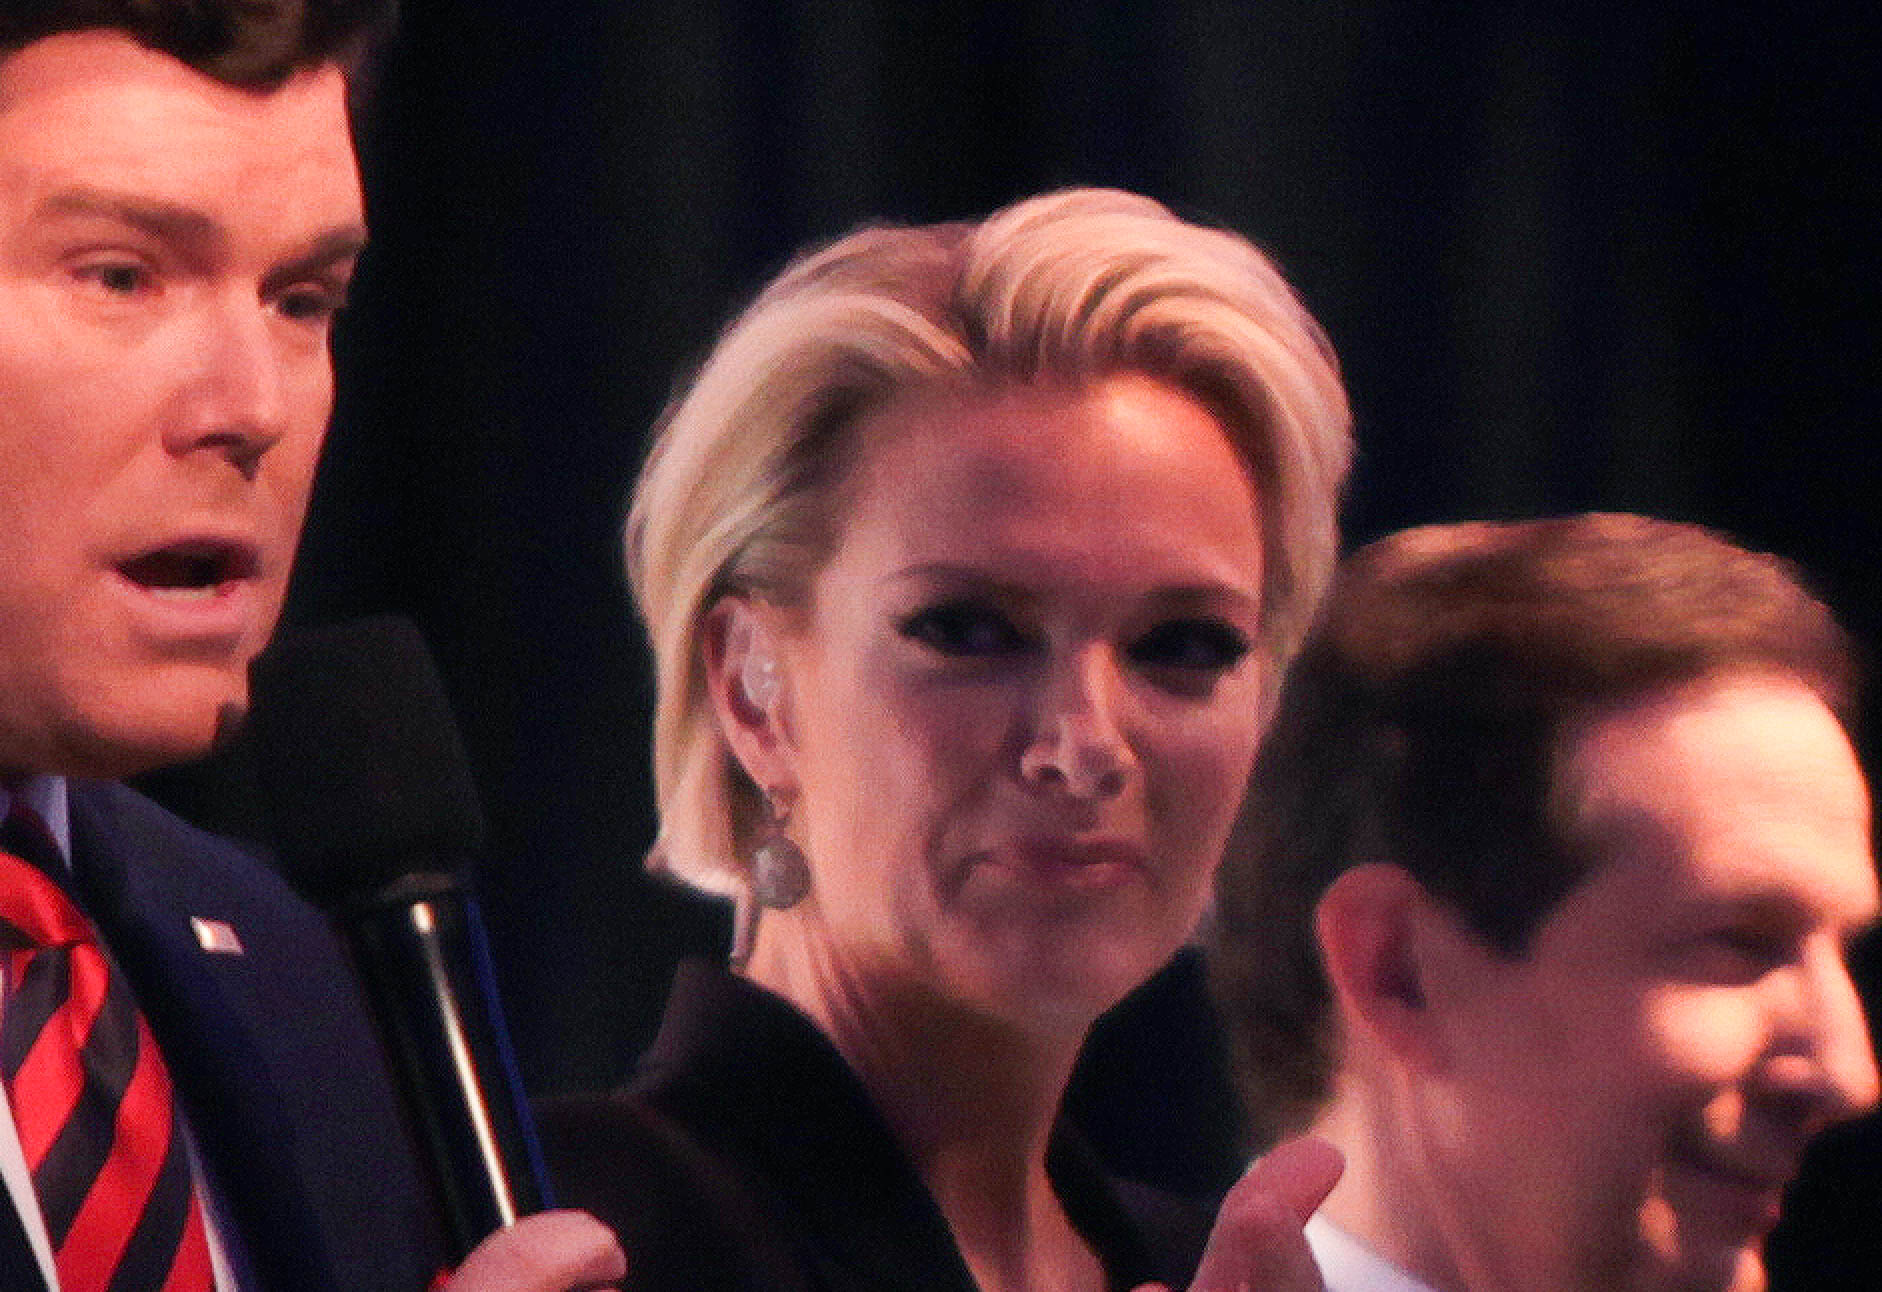 Megyn Kelly Fired by NBC News After Losing Conservative Following?